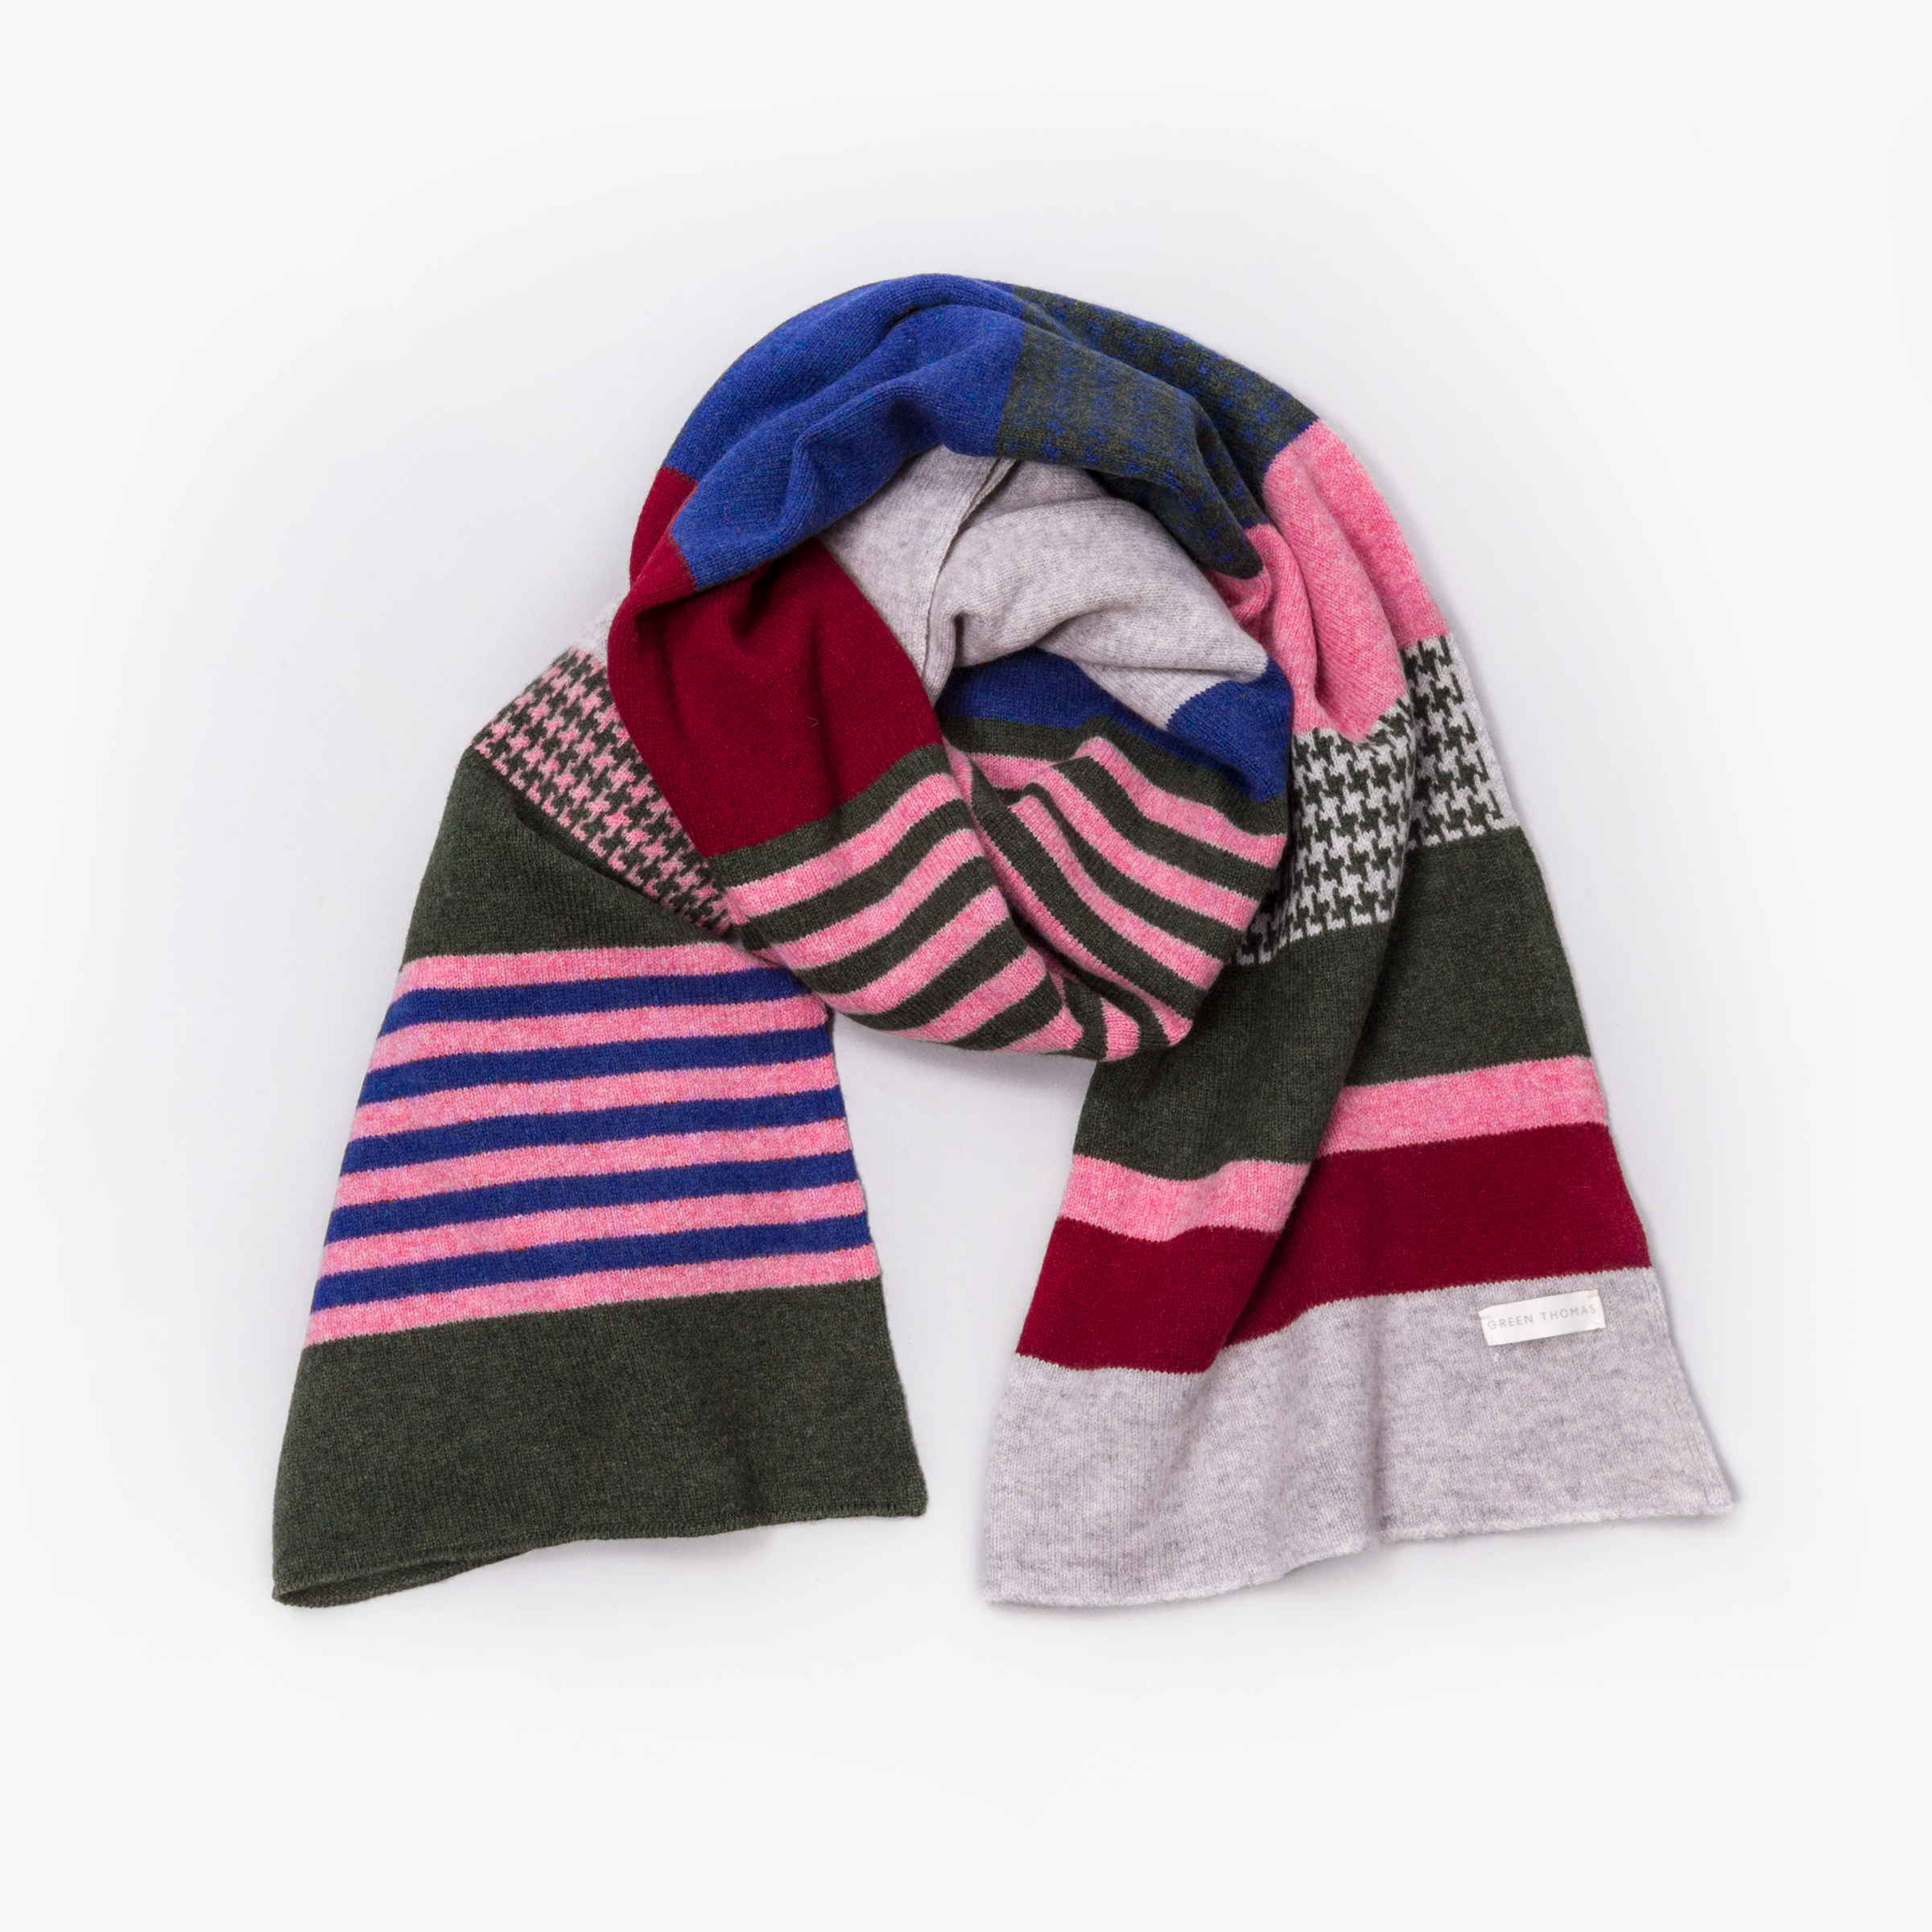 Blanket Scarf in LOCAL colourway (photo: Ross Fraser McLean)